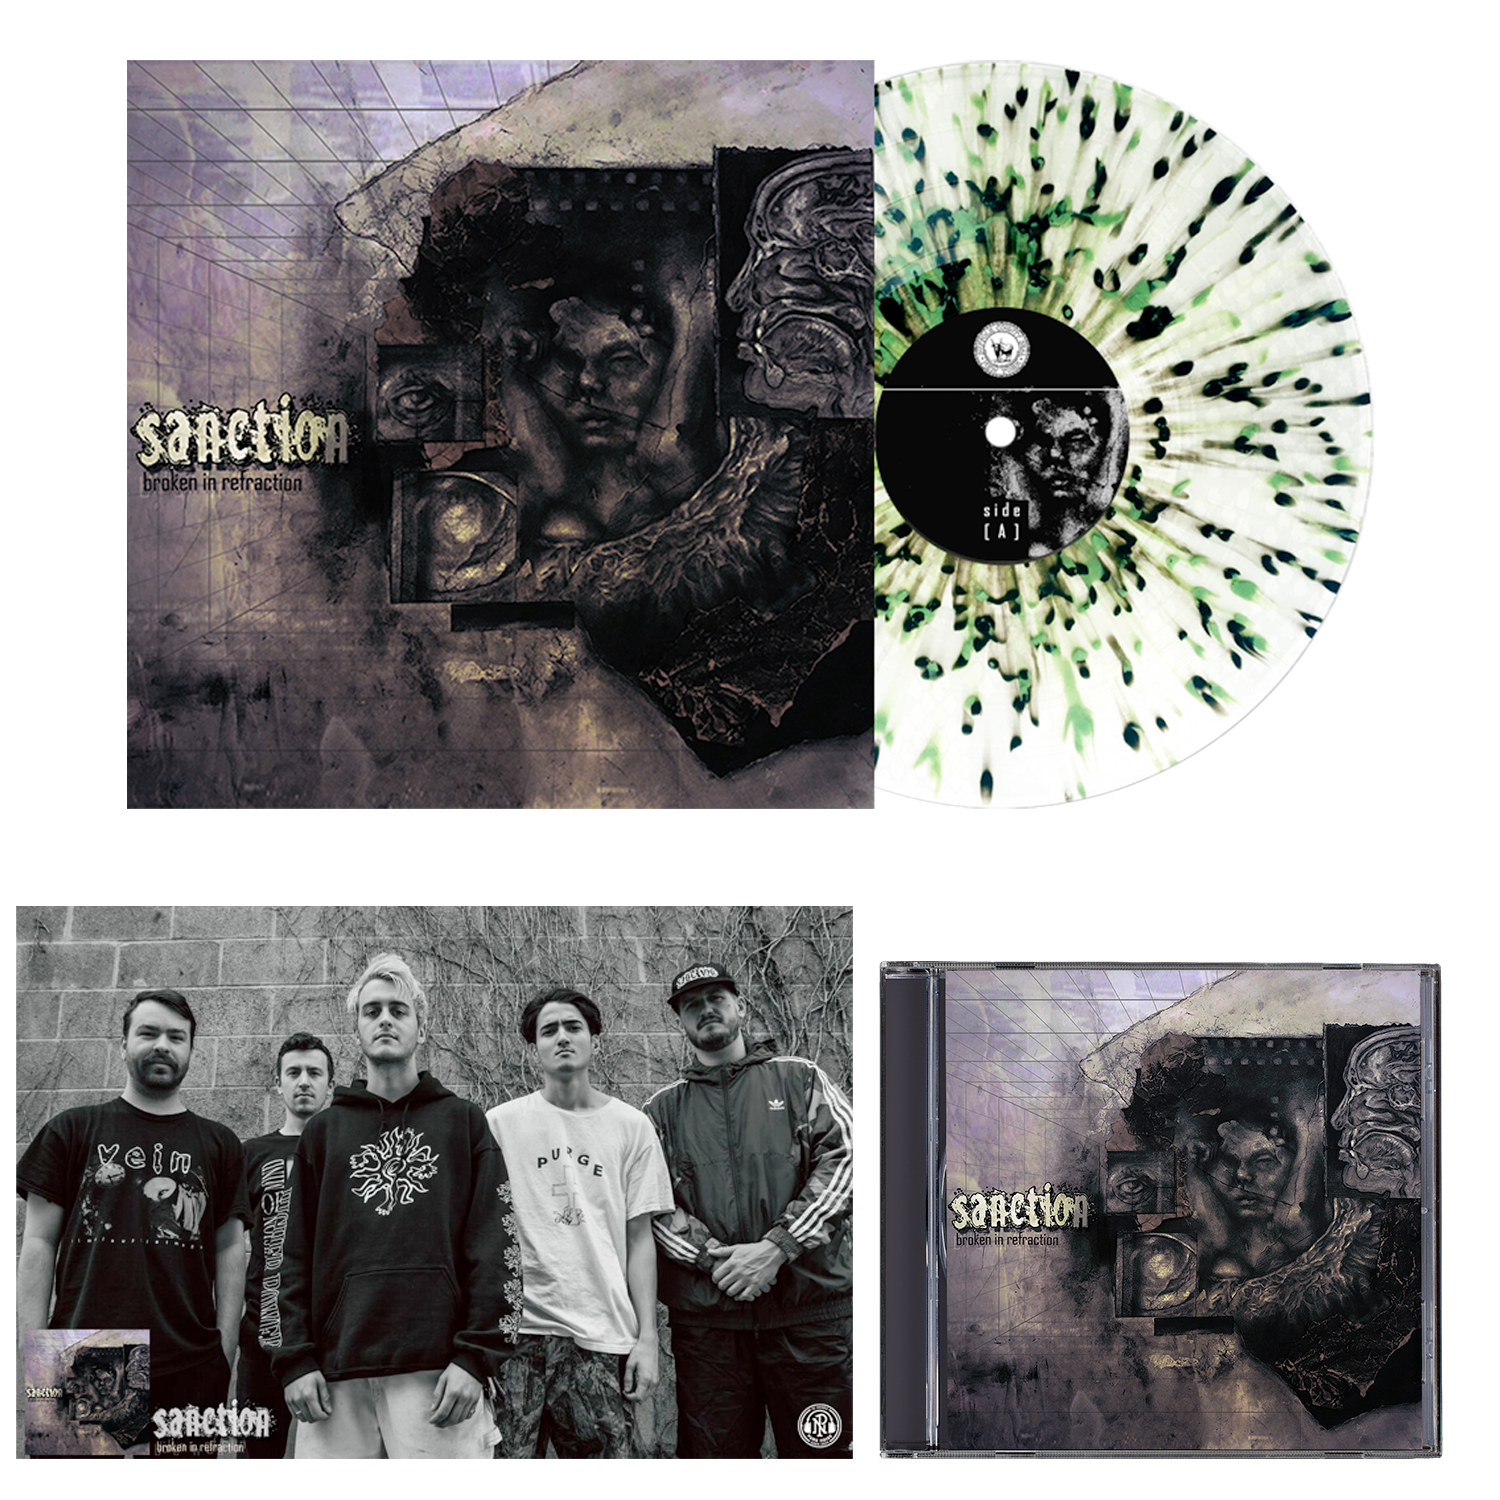 Sanction 'Broken In Refraction' CD + LP Various - Ultra Clear with Heavy Olive Green and Black splatter